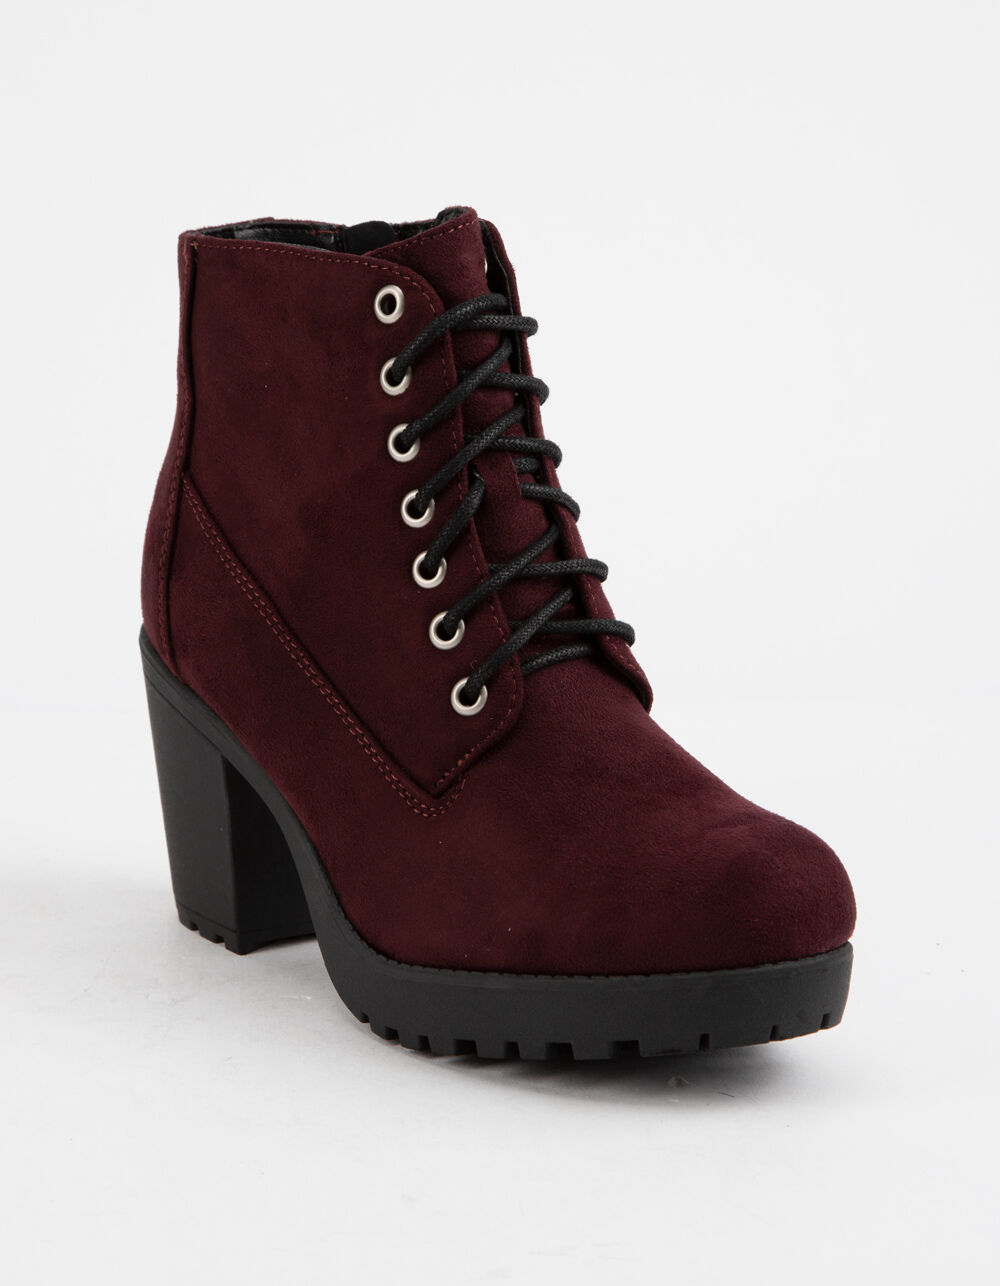 SODA Lug Sole Lace Up Wine Booties